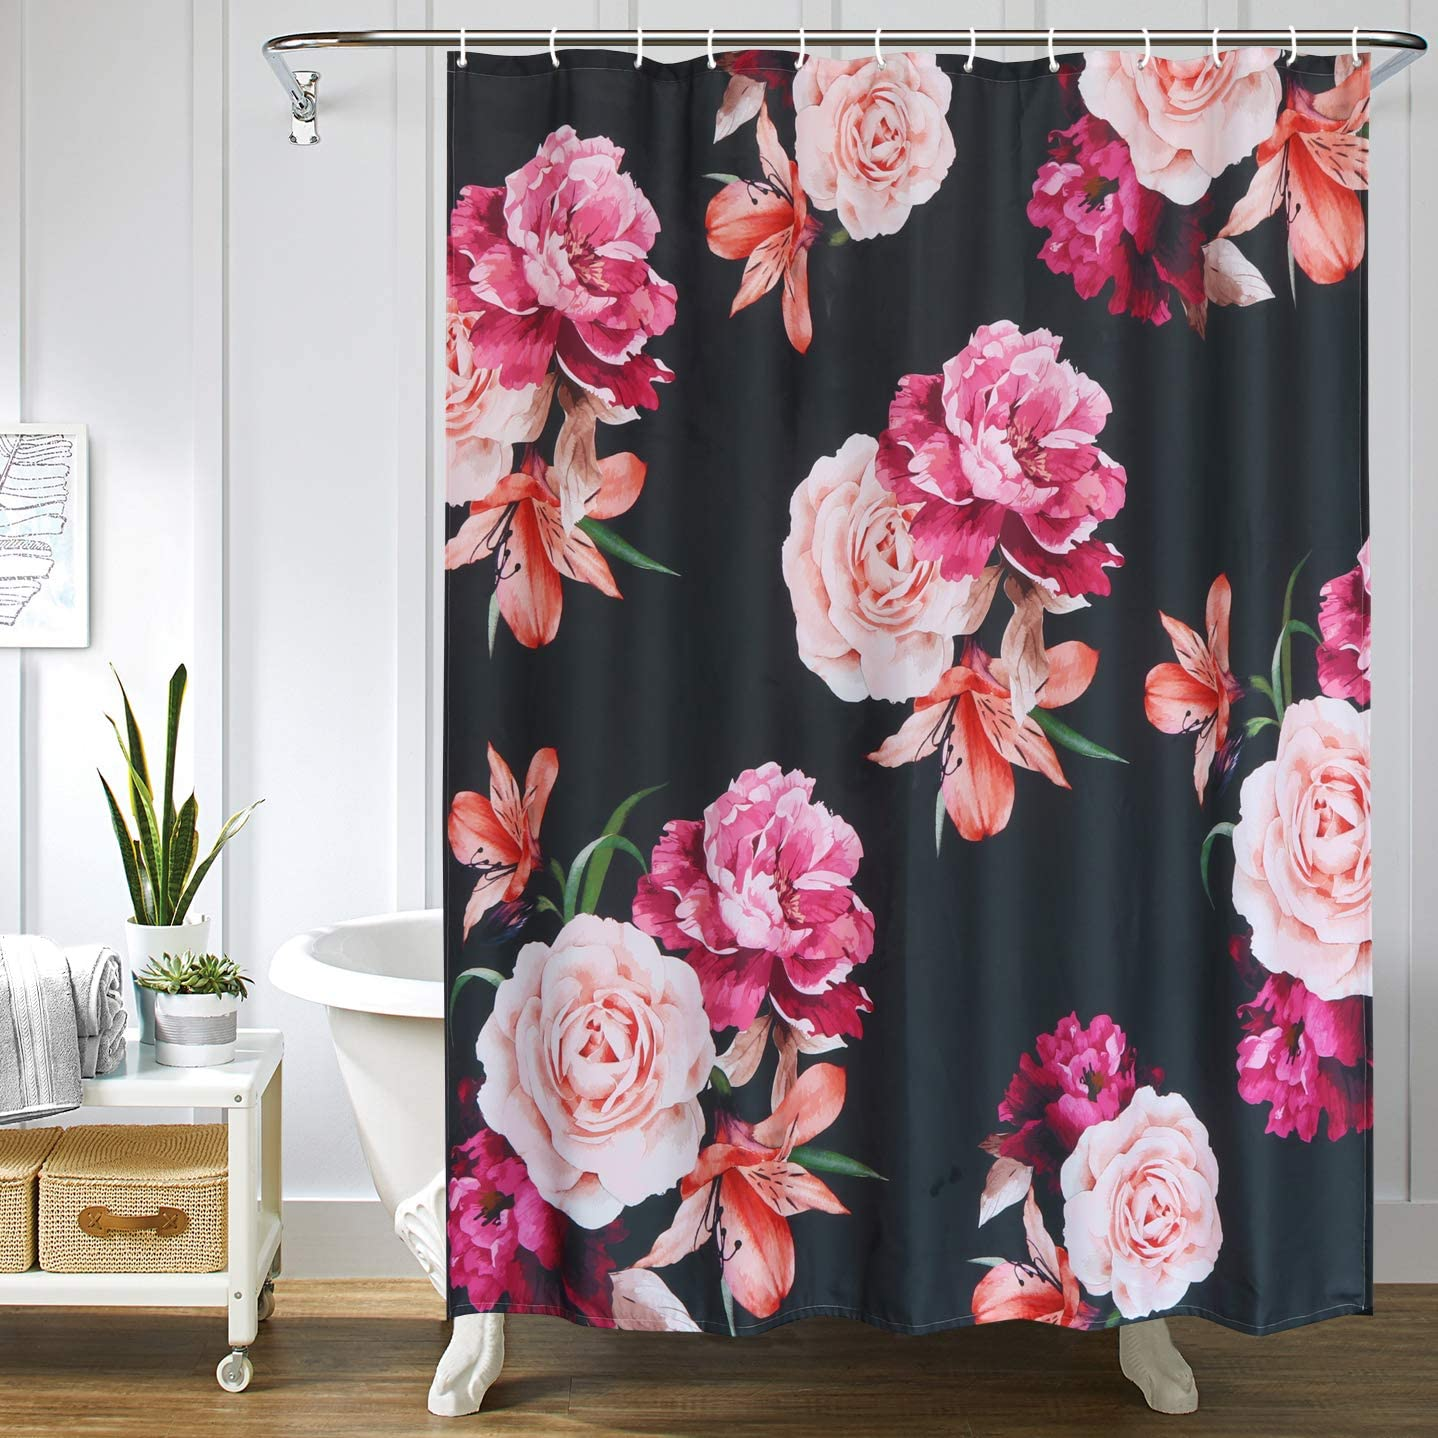 Uphome Floral Fabric Shower Curtain, Black and Purple Shabby Chic Rose Flower Cloth Shower Curtain 180 GSM Thick Waterproof Pastel Spring Penny Bathroom Curtains for Shower with Hooks Set, 72X72